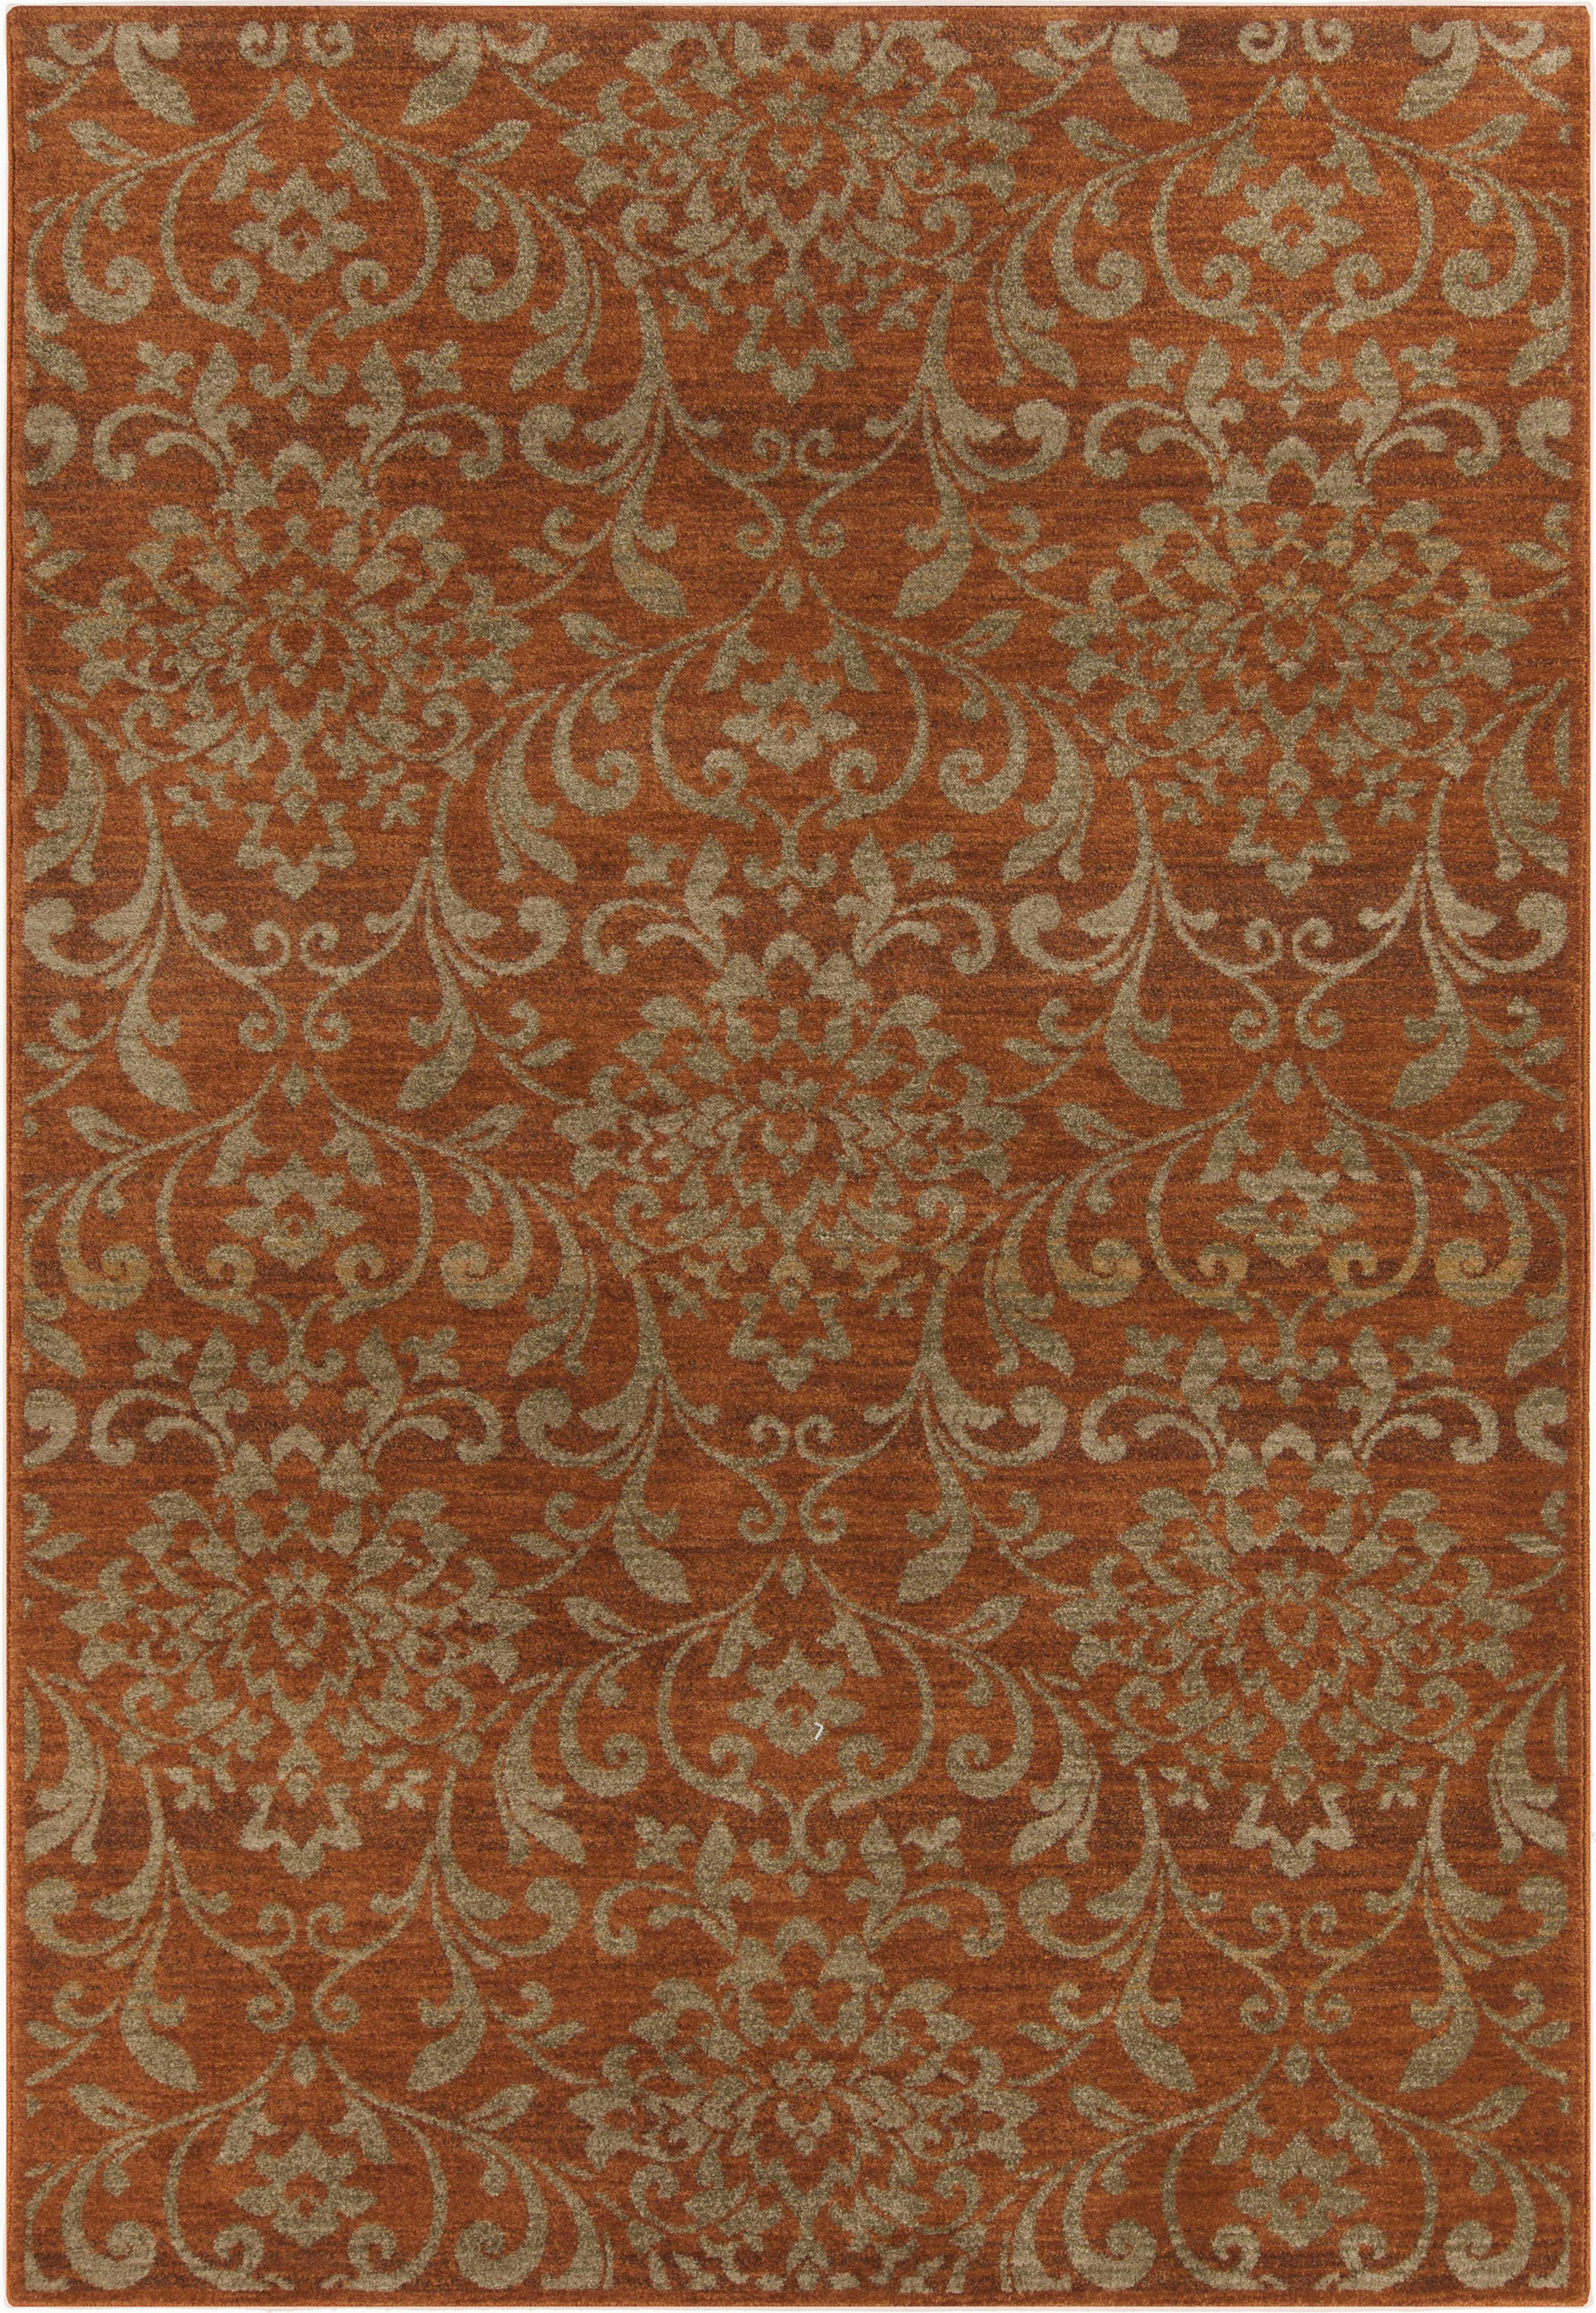 "Surya Rugs Arabesque 5'3"" x 7'3"" - Item Number: ABS3007-5373"